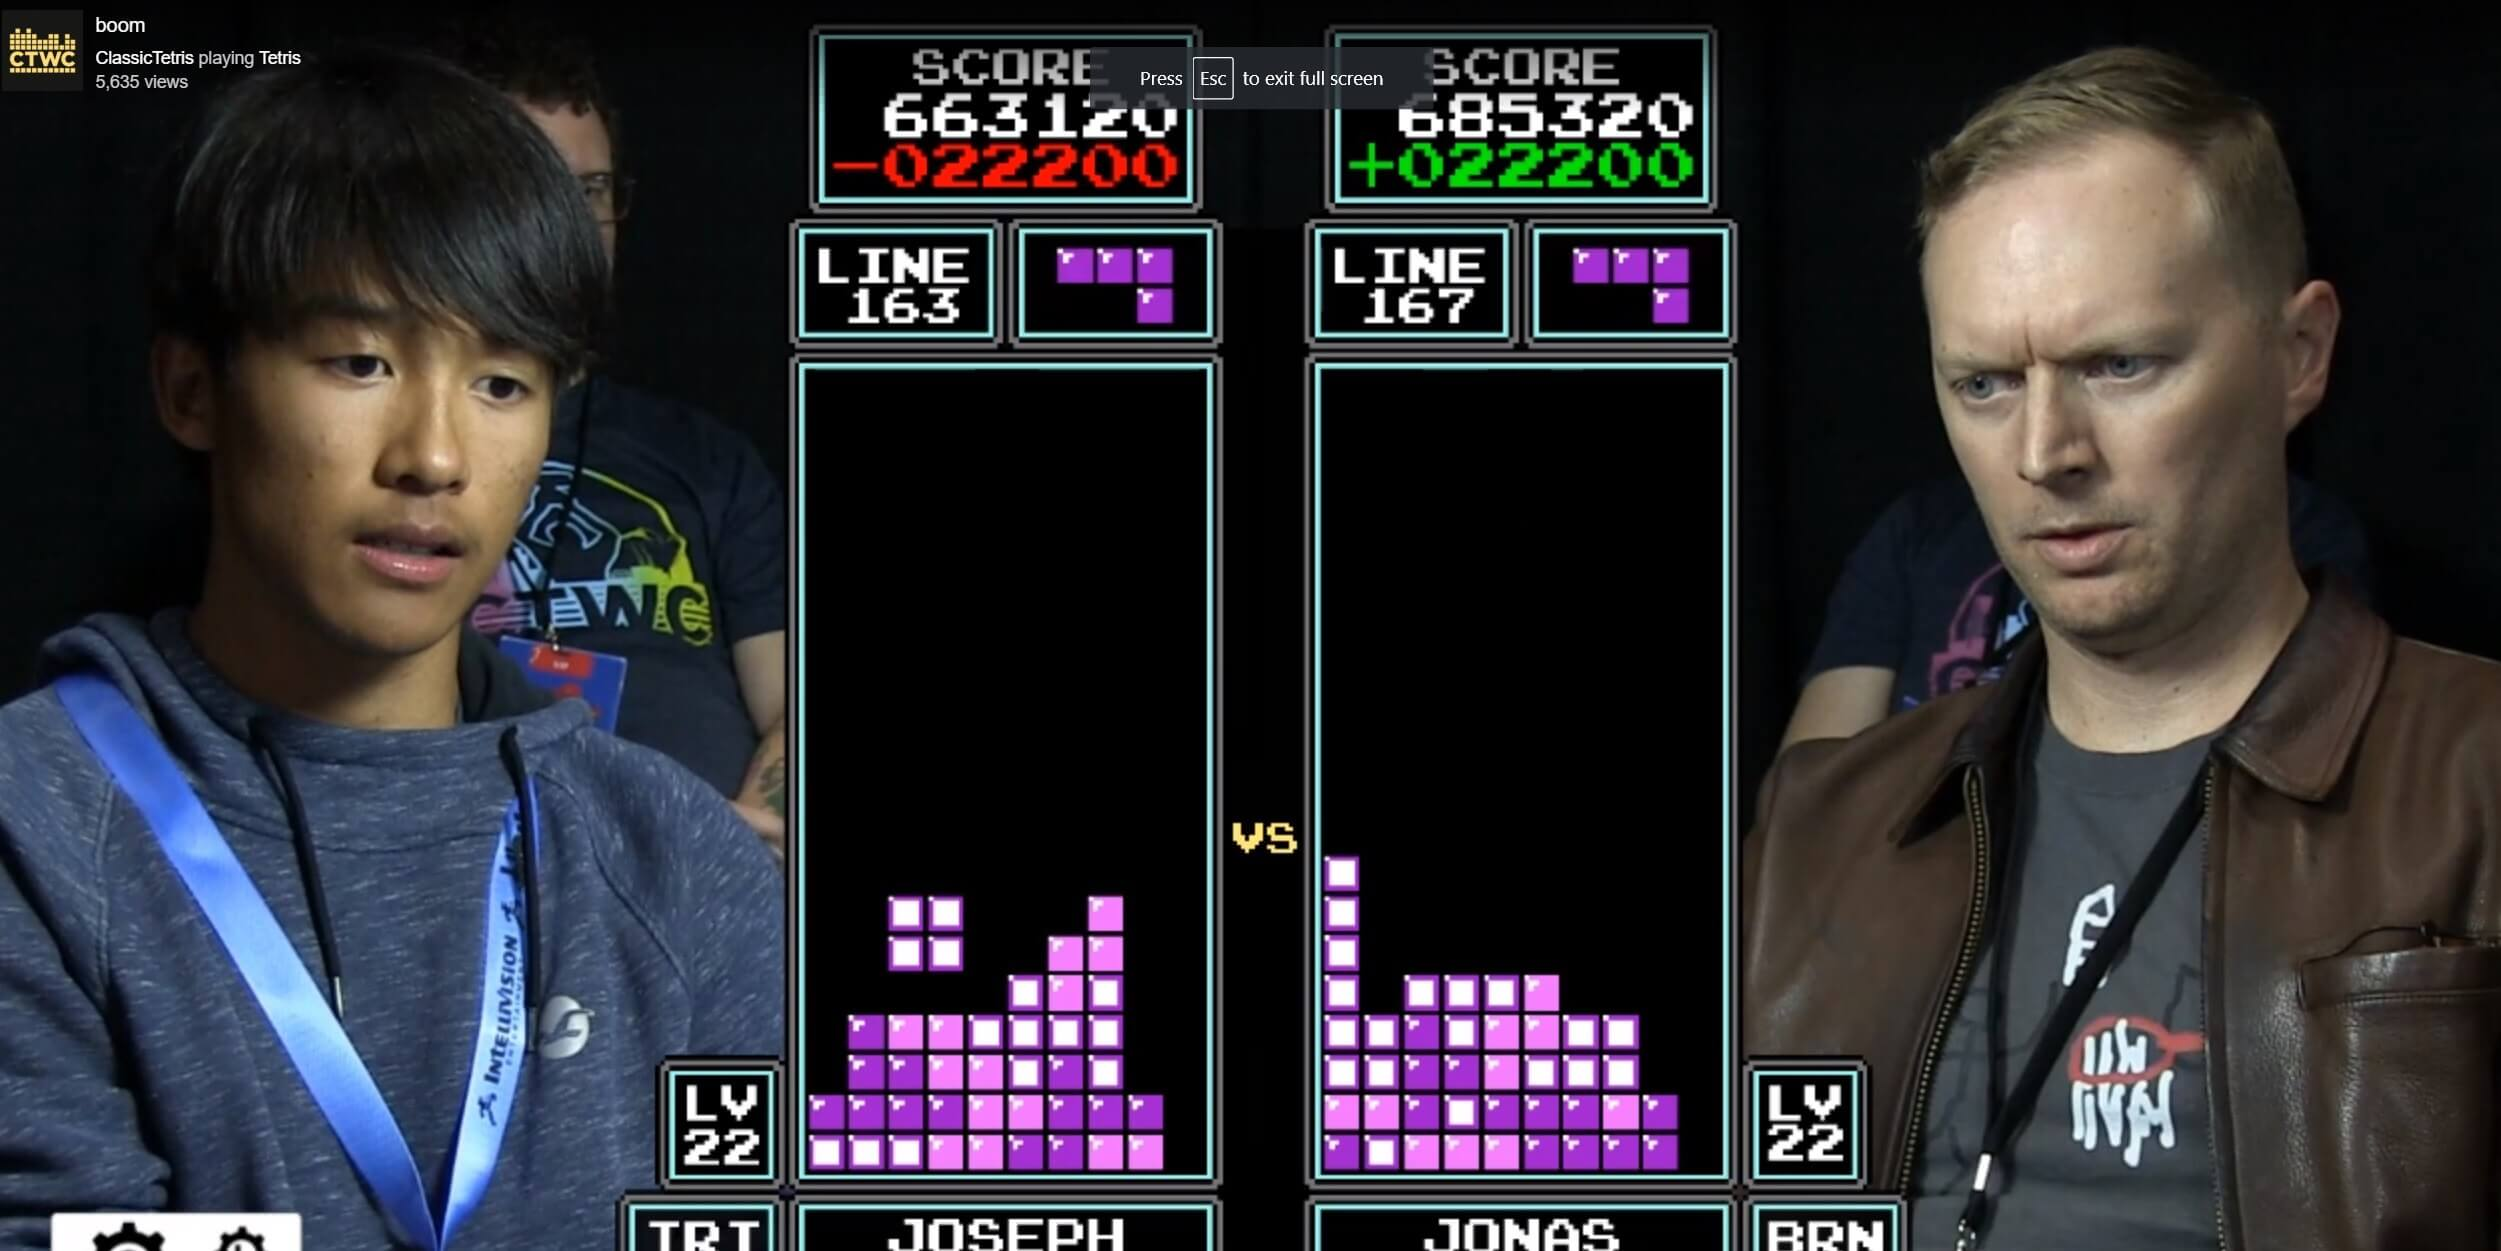 16-Year-Old 'Tetris' Player Defeats 7-Time Champion